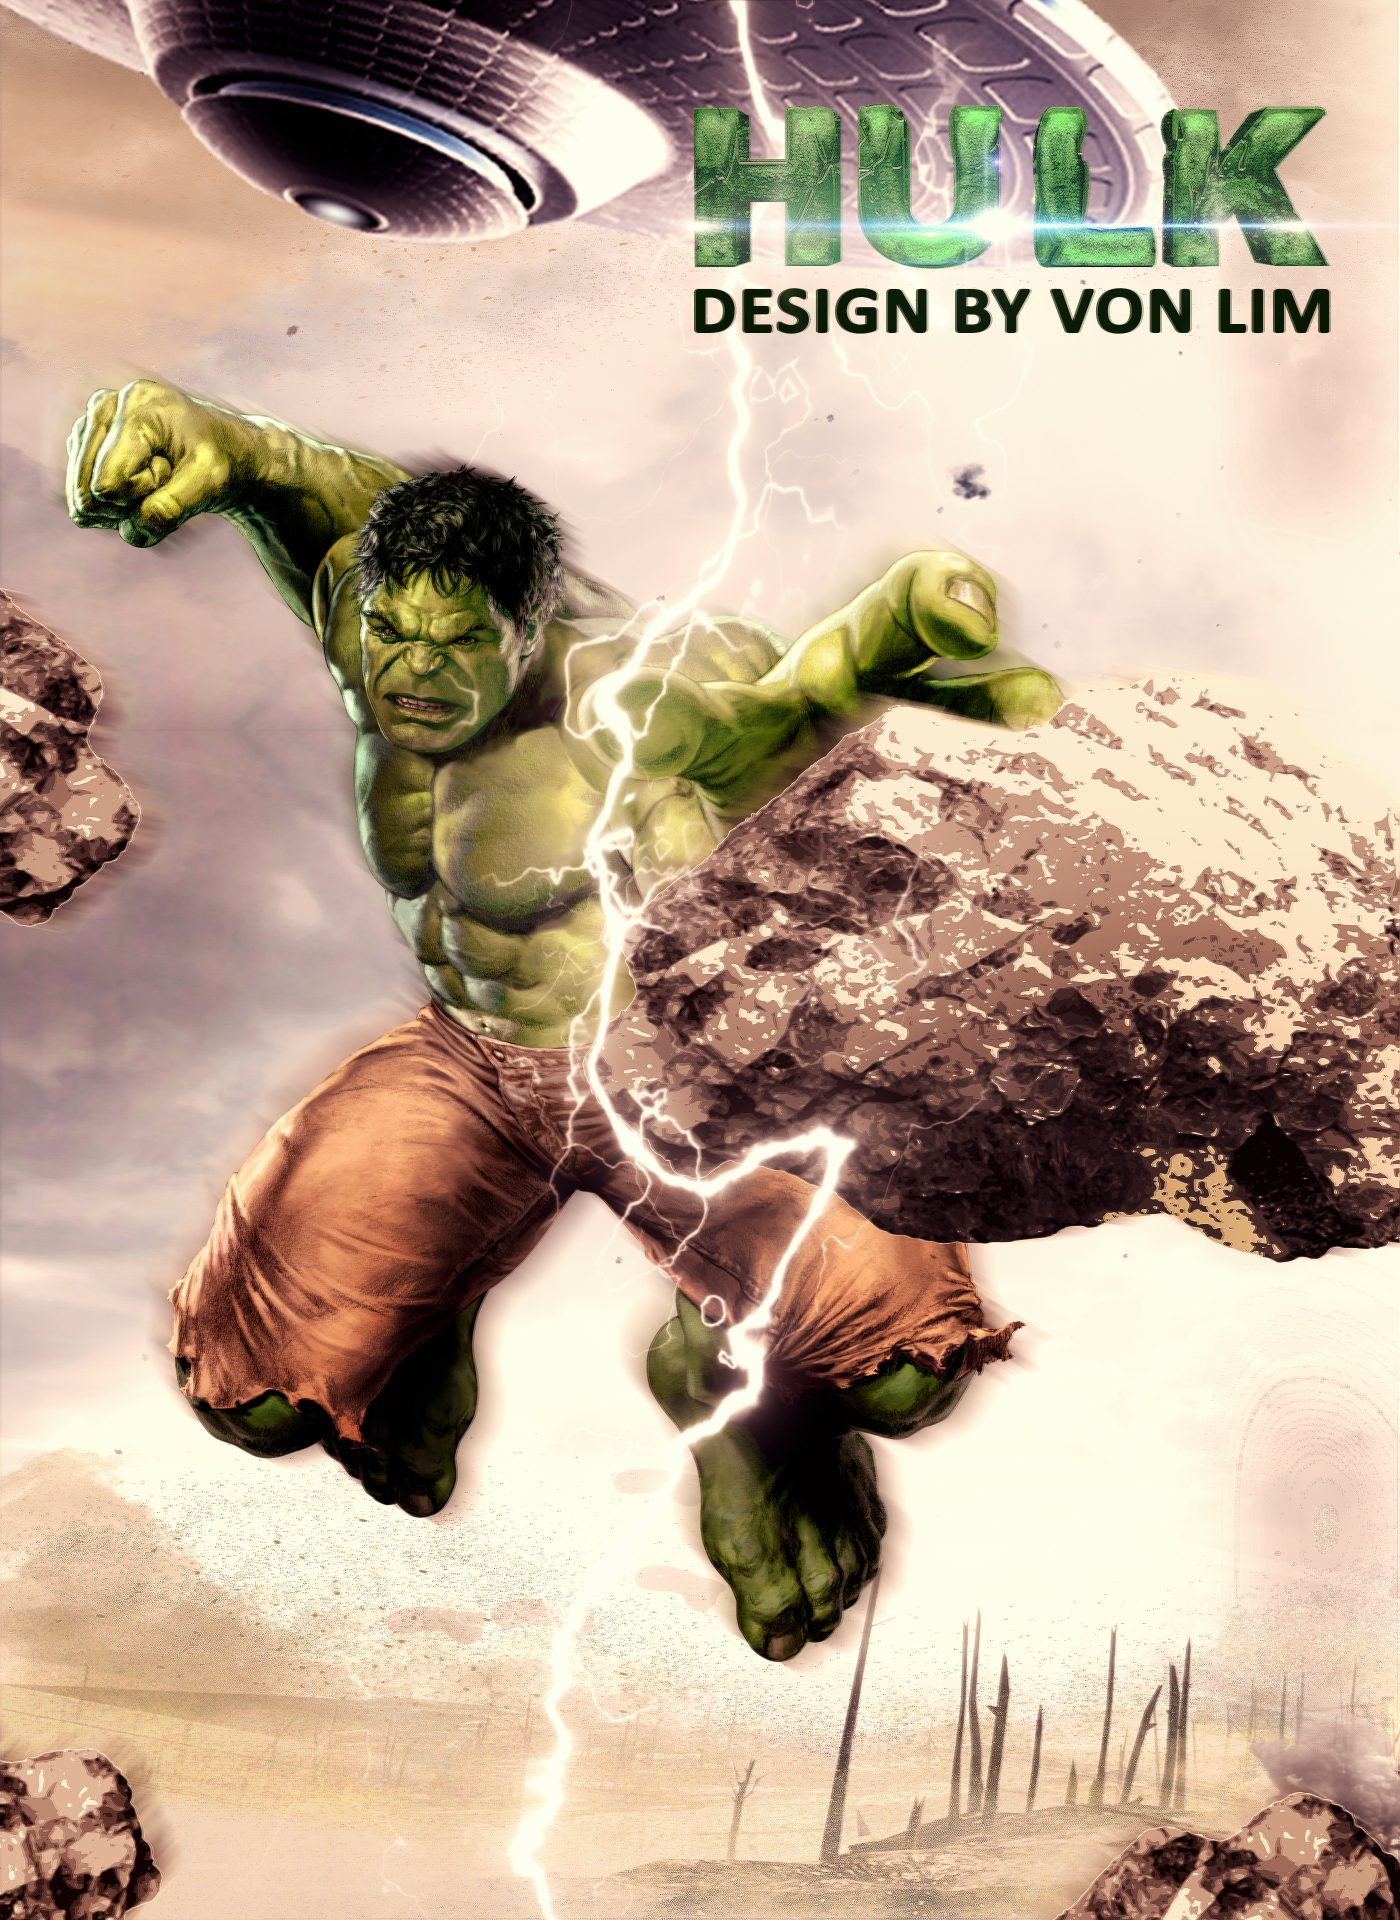 Hulk-Graphics-Design-Malaysia-Artwork-VonLim-VonProduction-MyVpsGroup